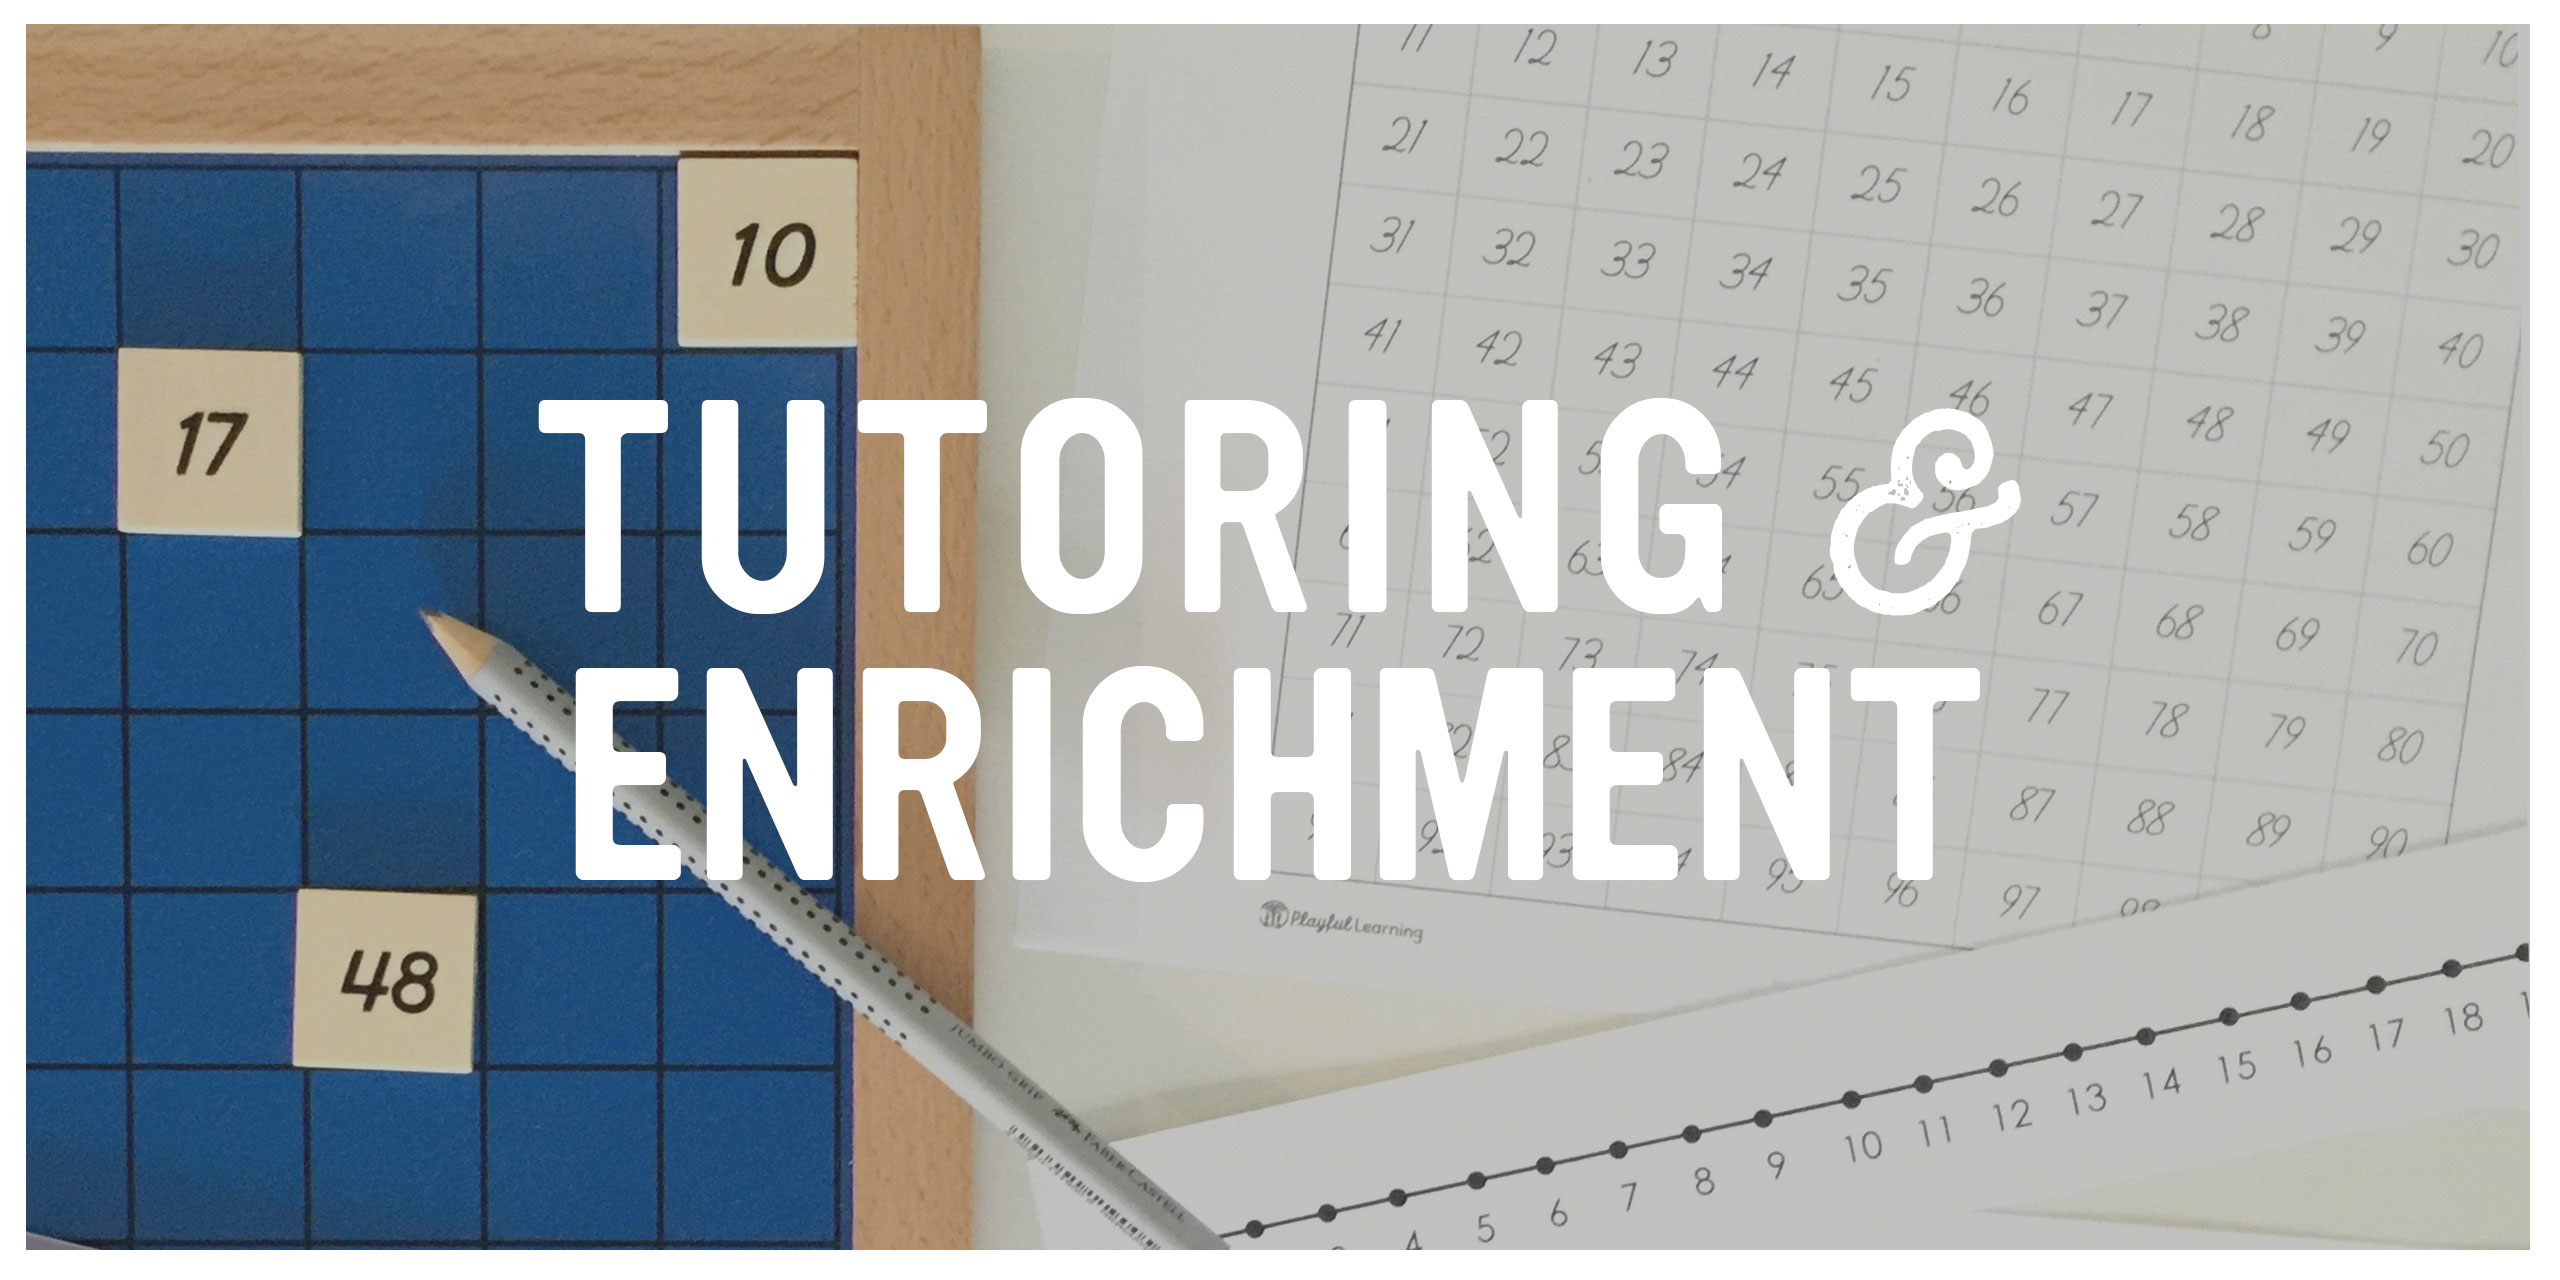 Playful Learning Studio: Tutoring and Enrichment